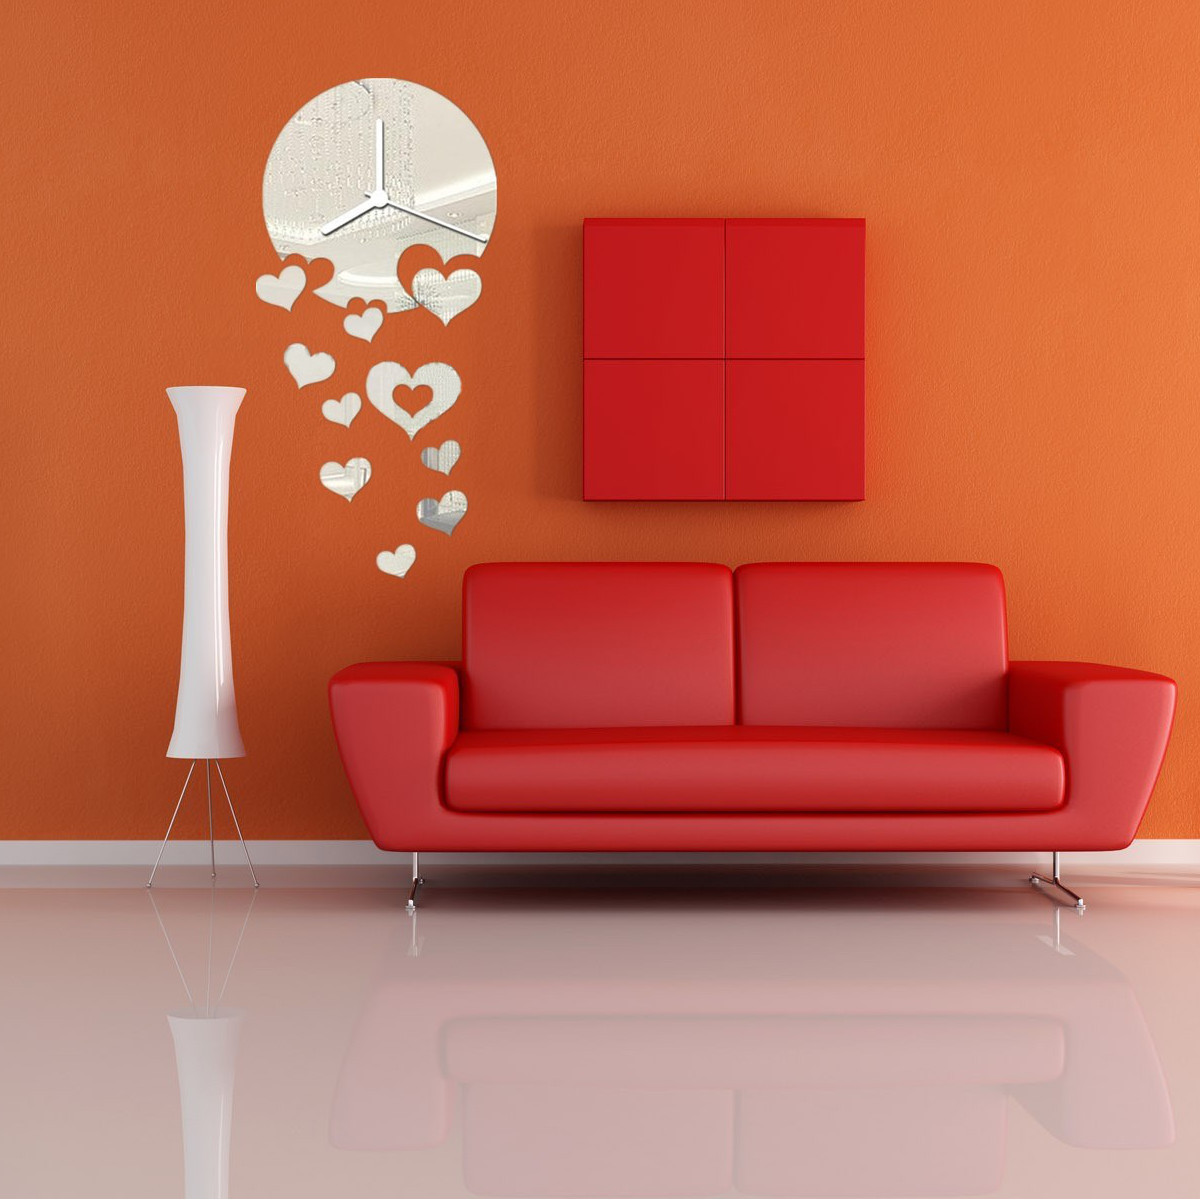 Modern diy frameless acrylic mirror wall clocks sticker home office decor art ebay - Wall decor mirror home accents ...